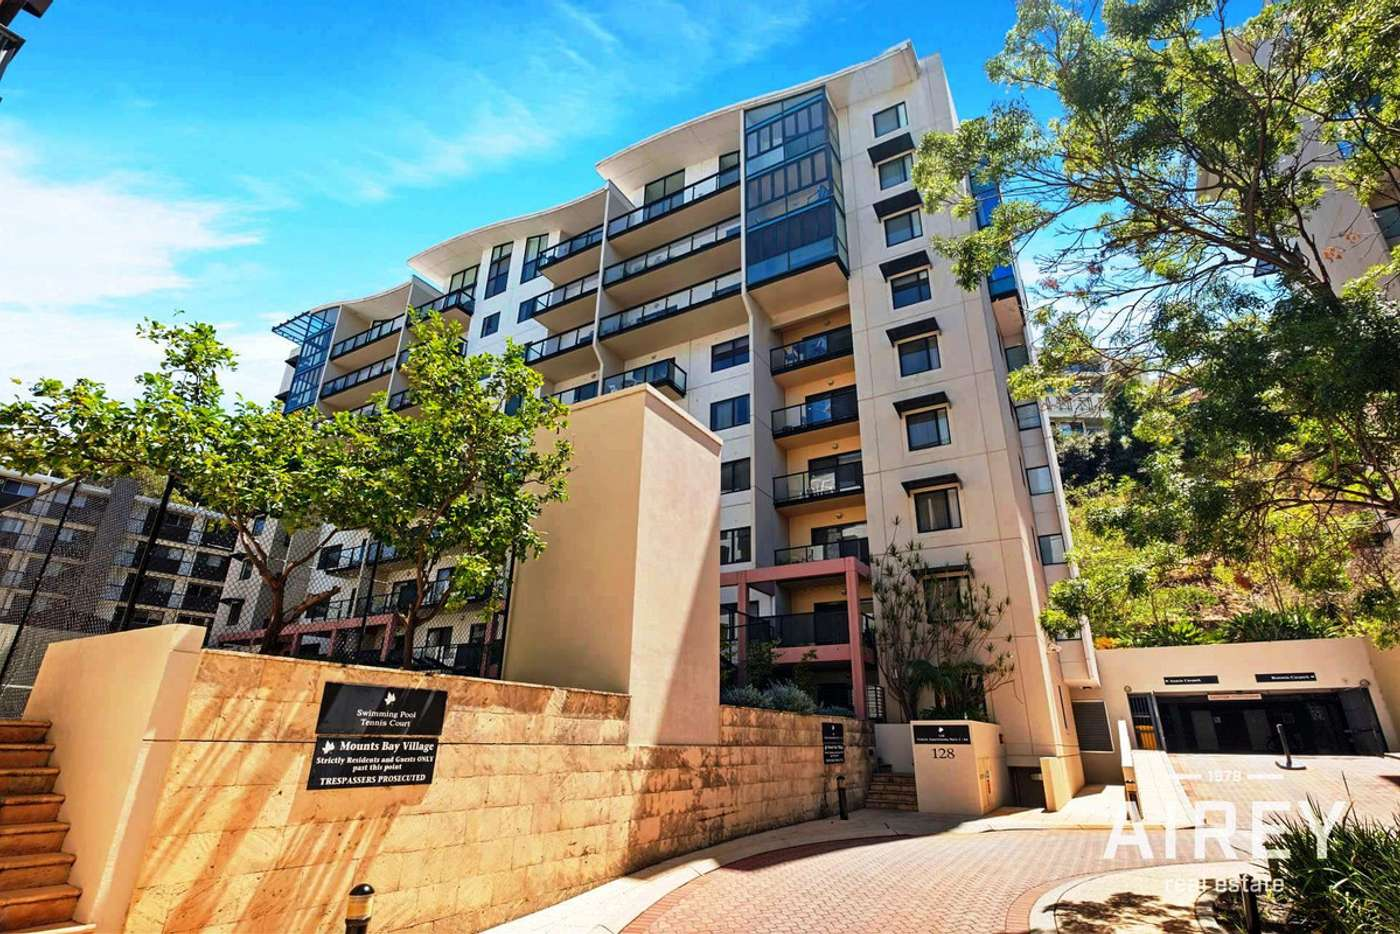 Main view of Homely apartment listing, 39/128 Mounts Bay Road, Perth WA 6000